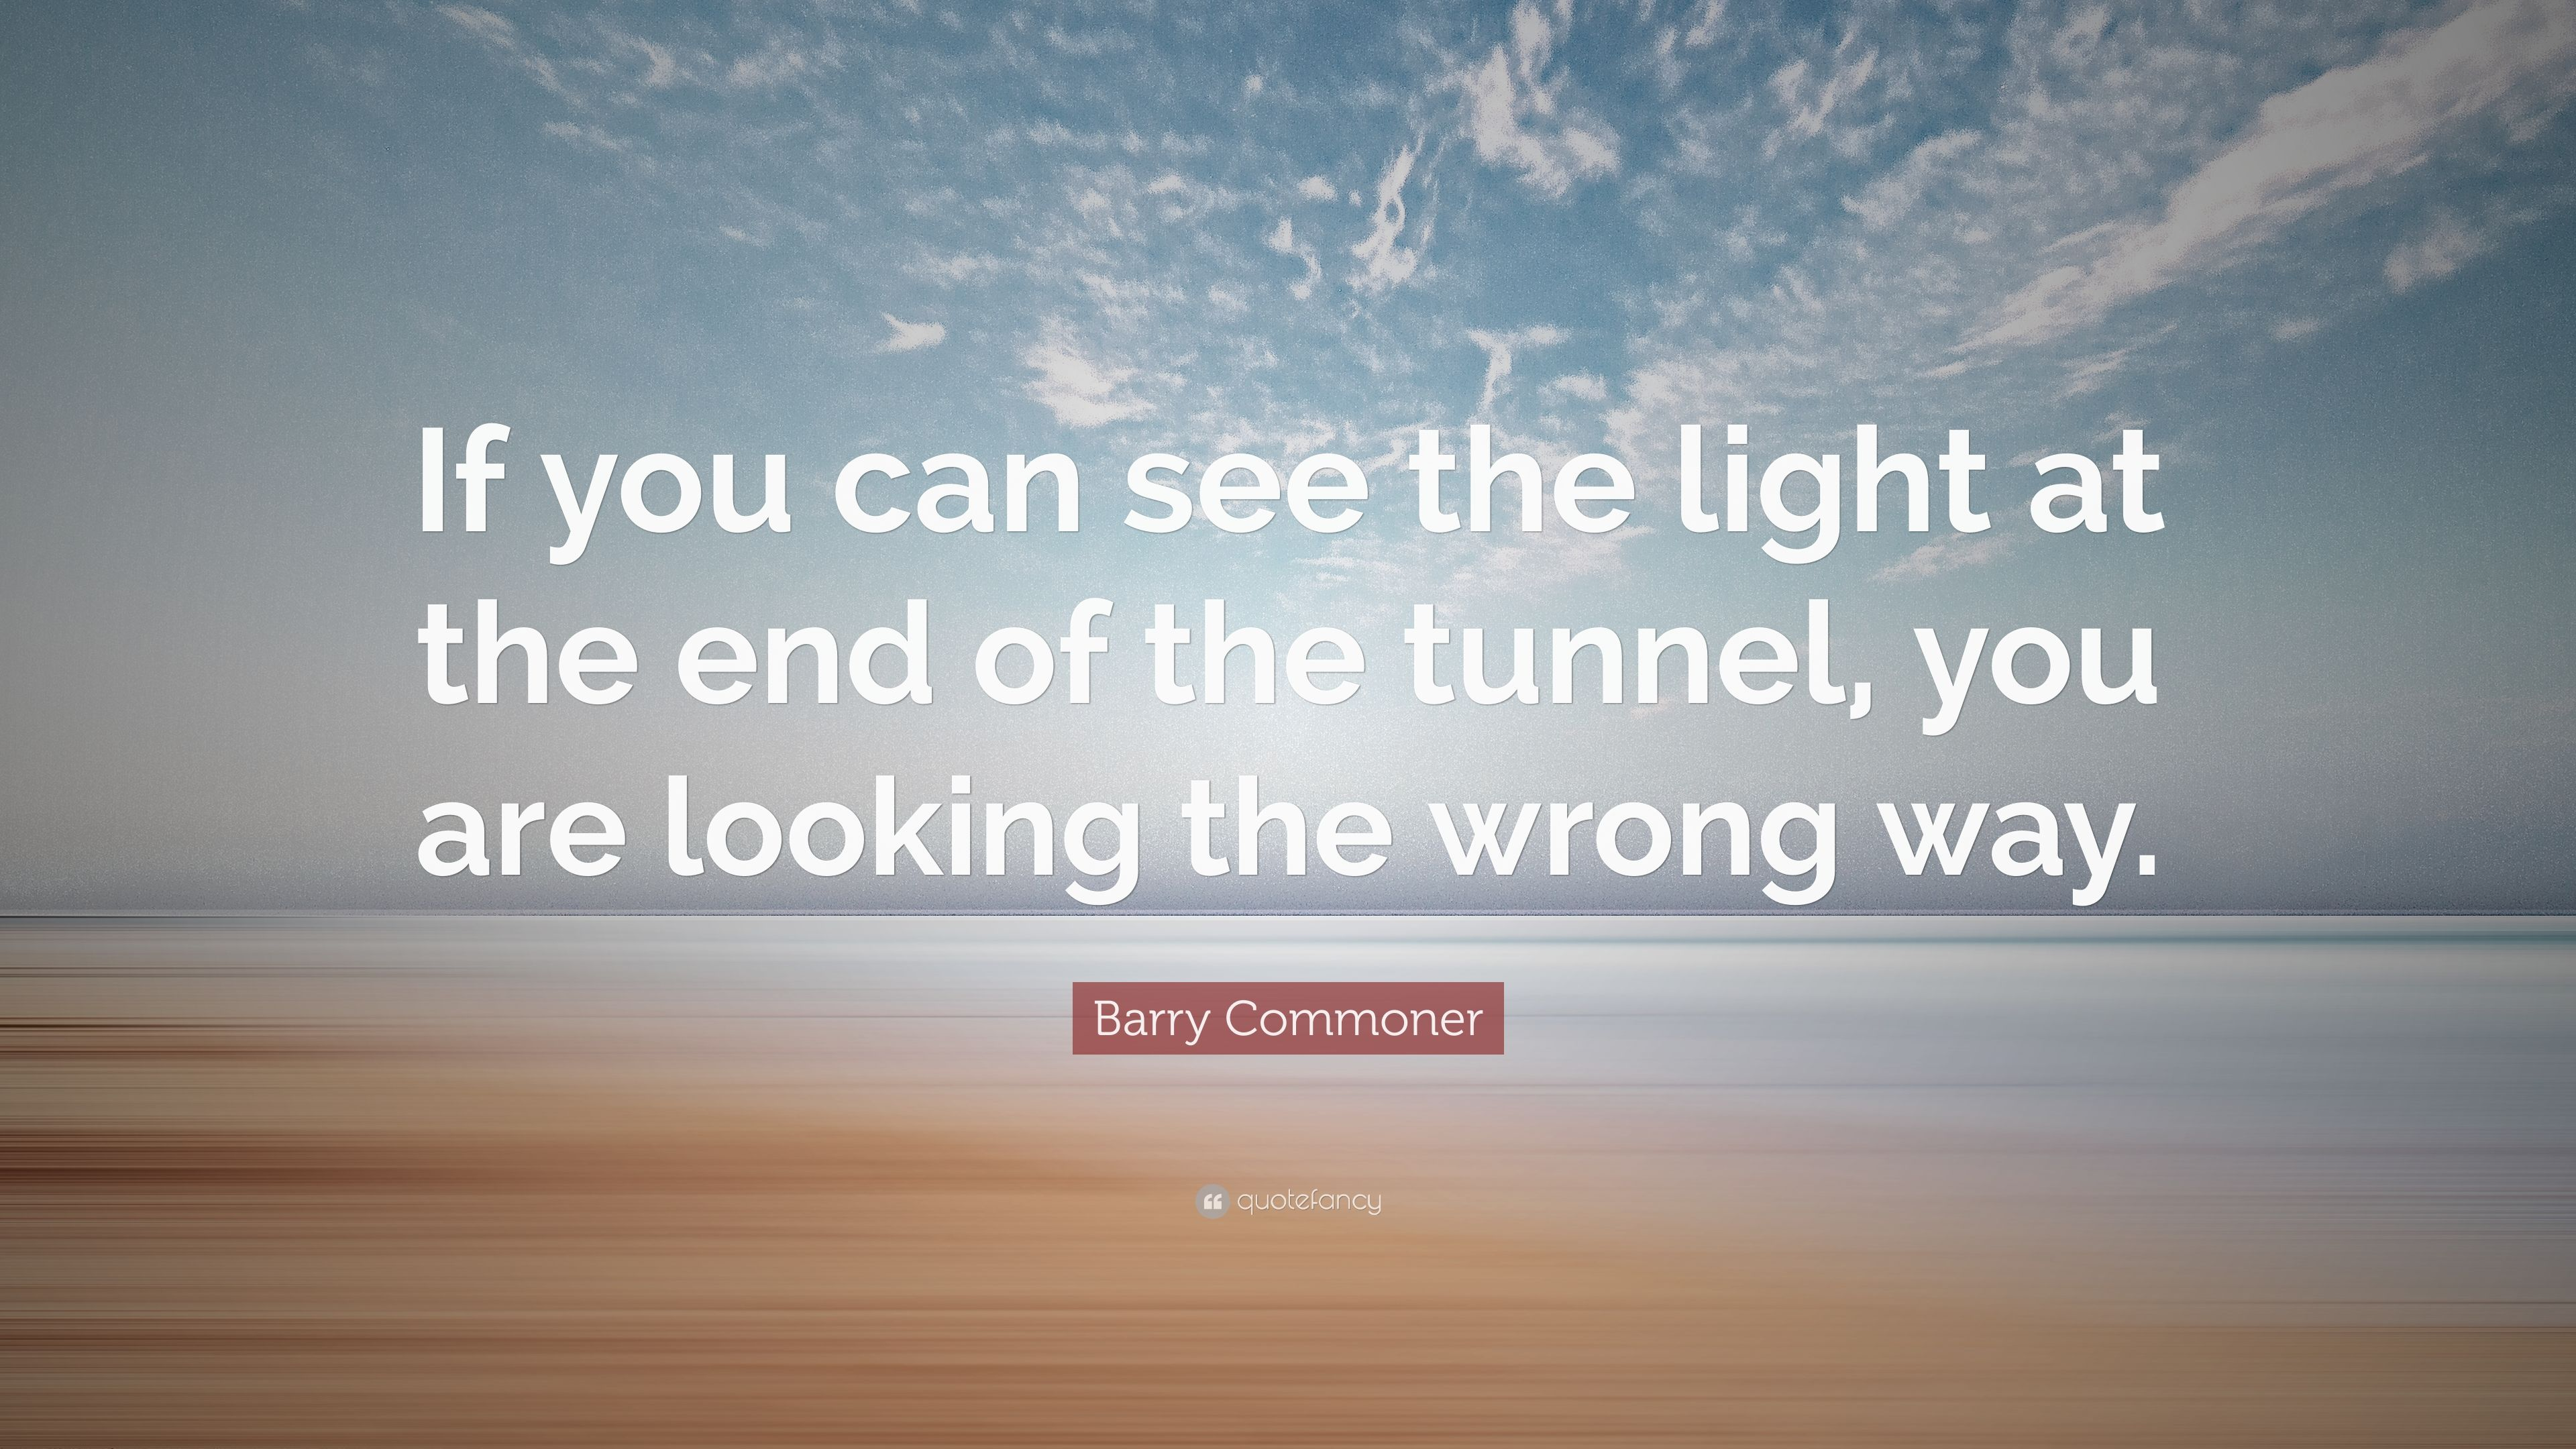 If Light At End Of Tunnel Is Green You >> Barry Commoner Quote If You Can See The Light At The End Of The